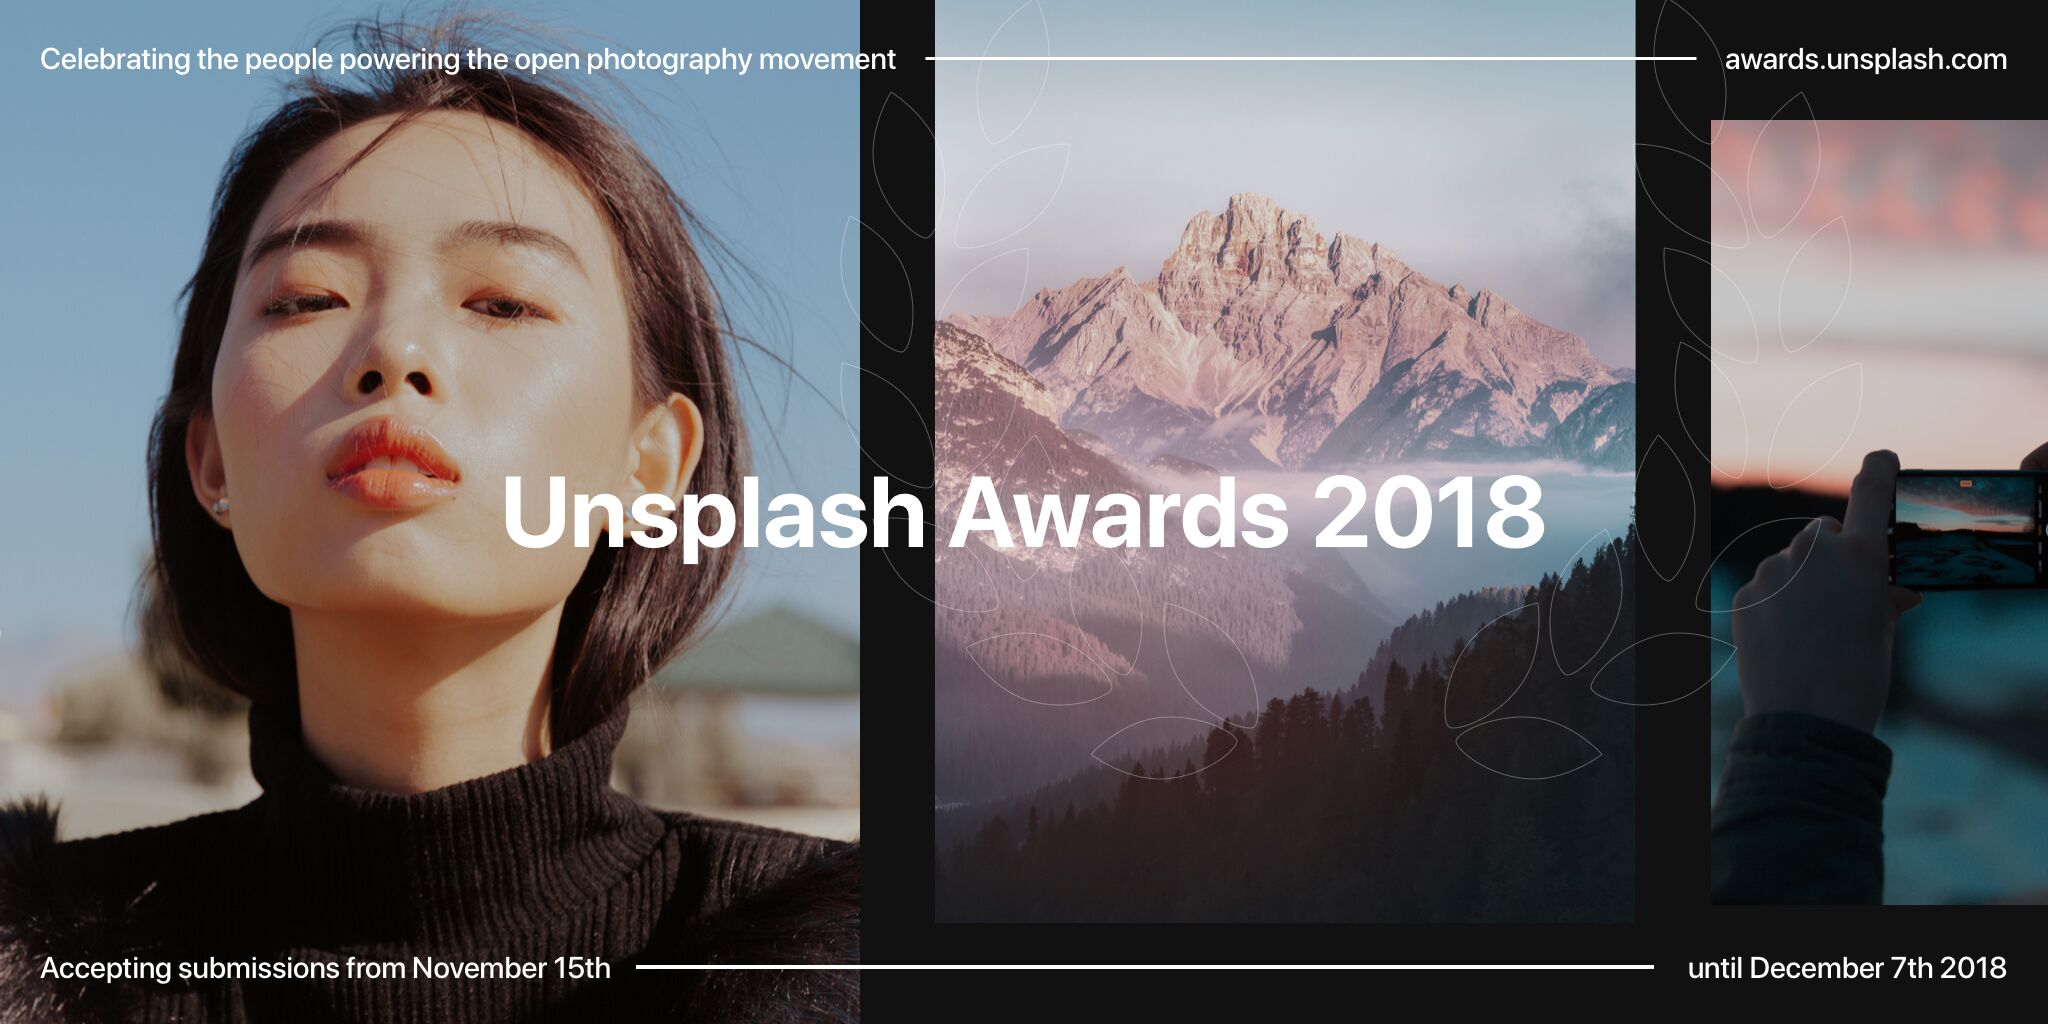 Unsplash Awards 2018